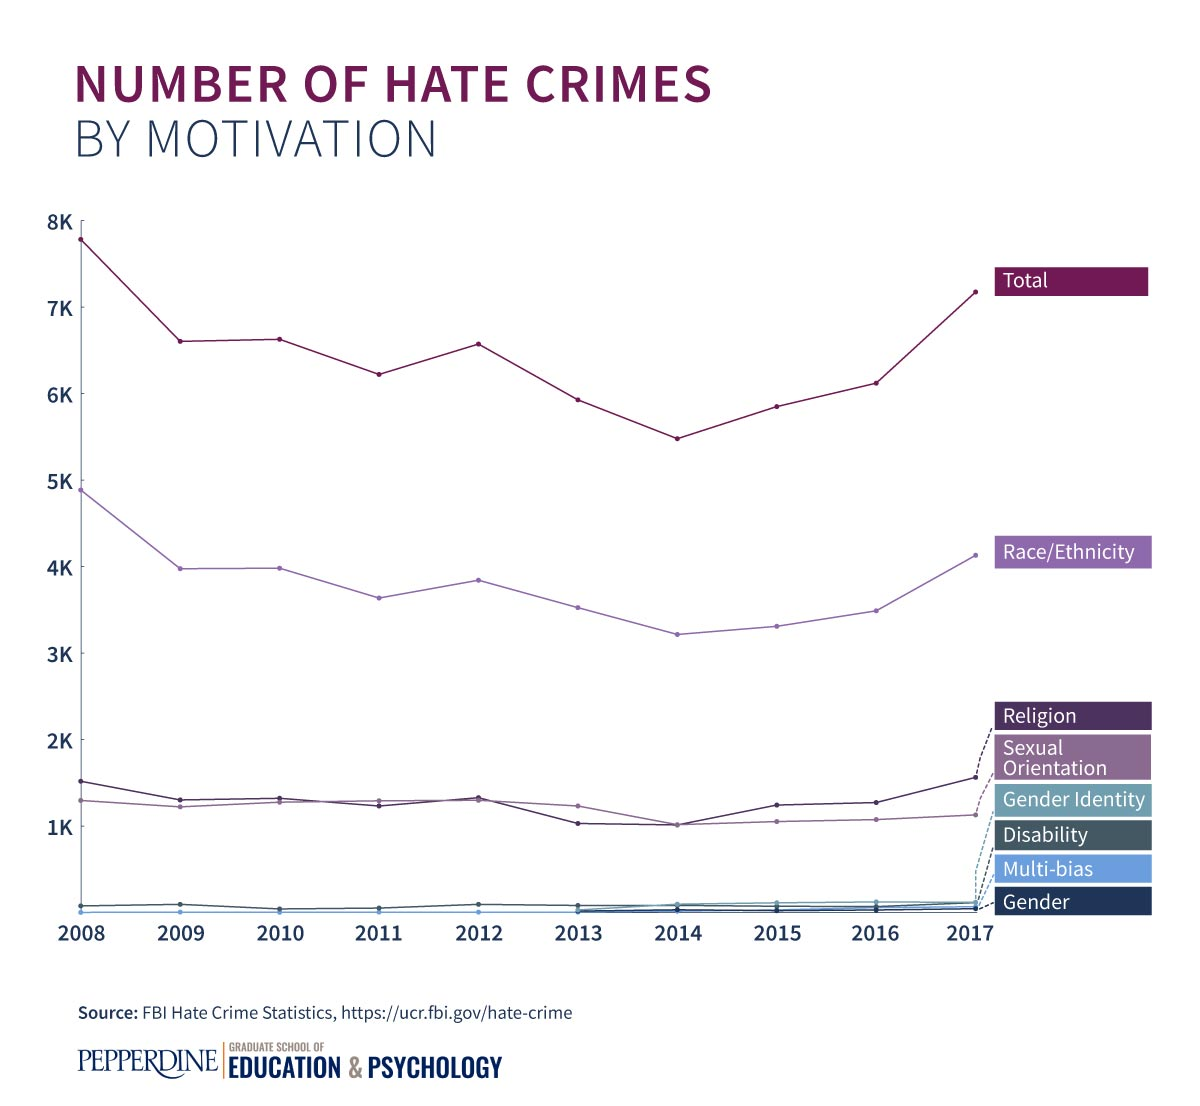 Bar graph showing the number of hate crimes by motivation since 2008.